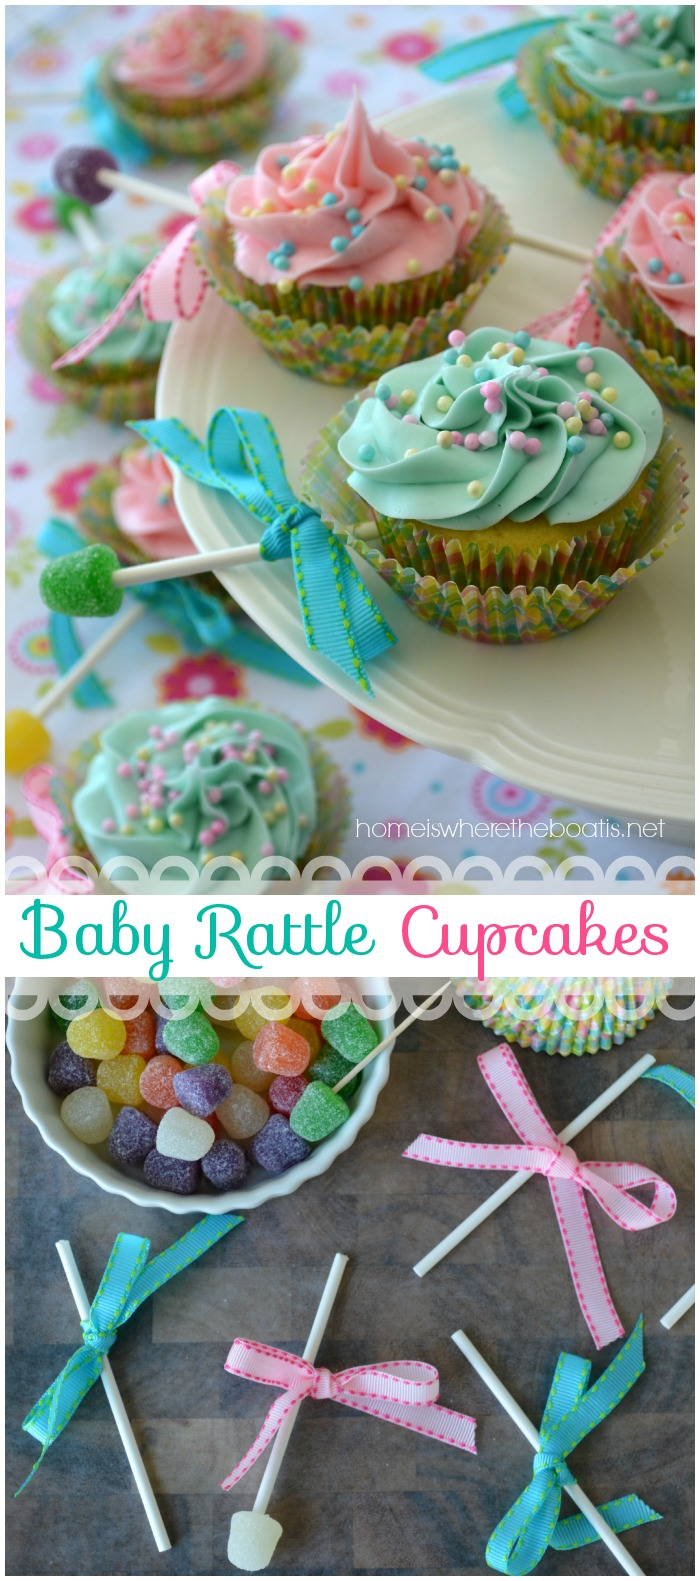 Baby Rattle Cupcakes Home Is Where The Boat Is